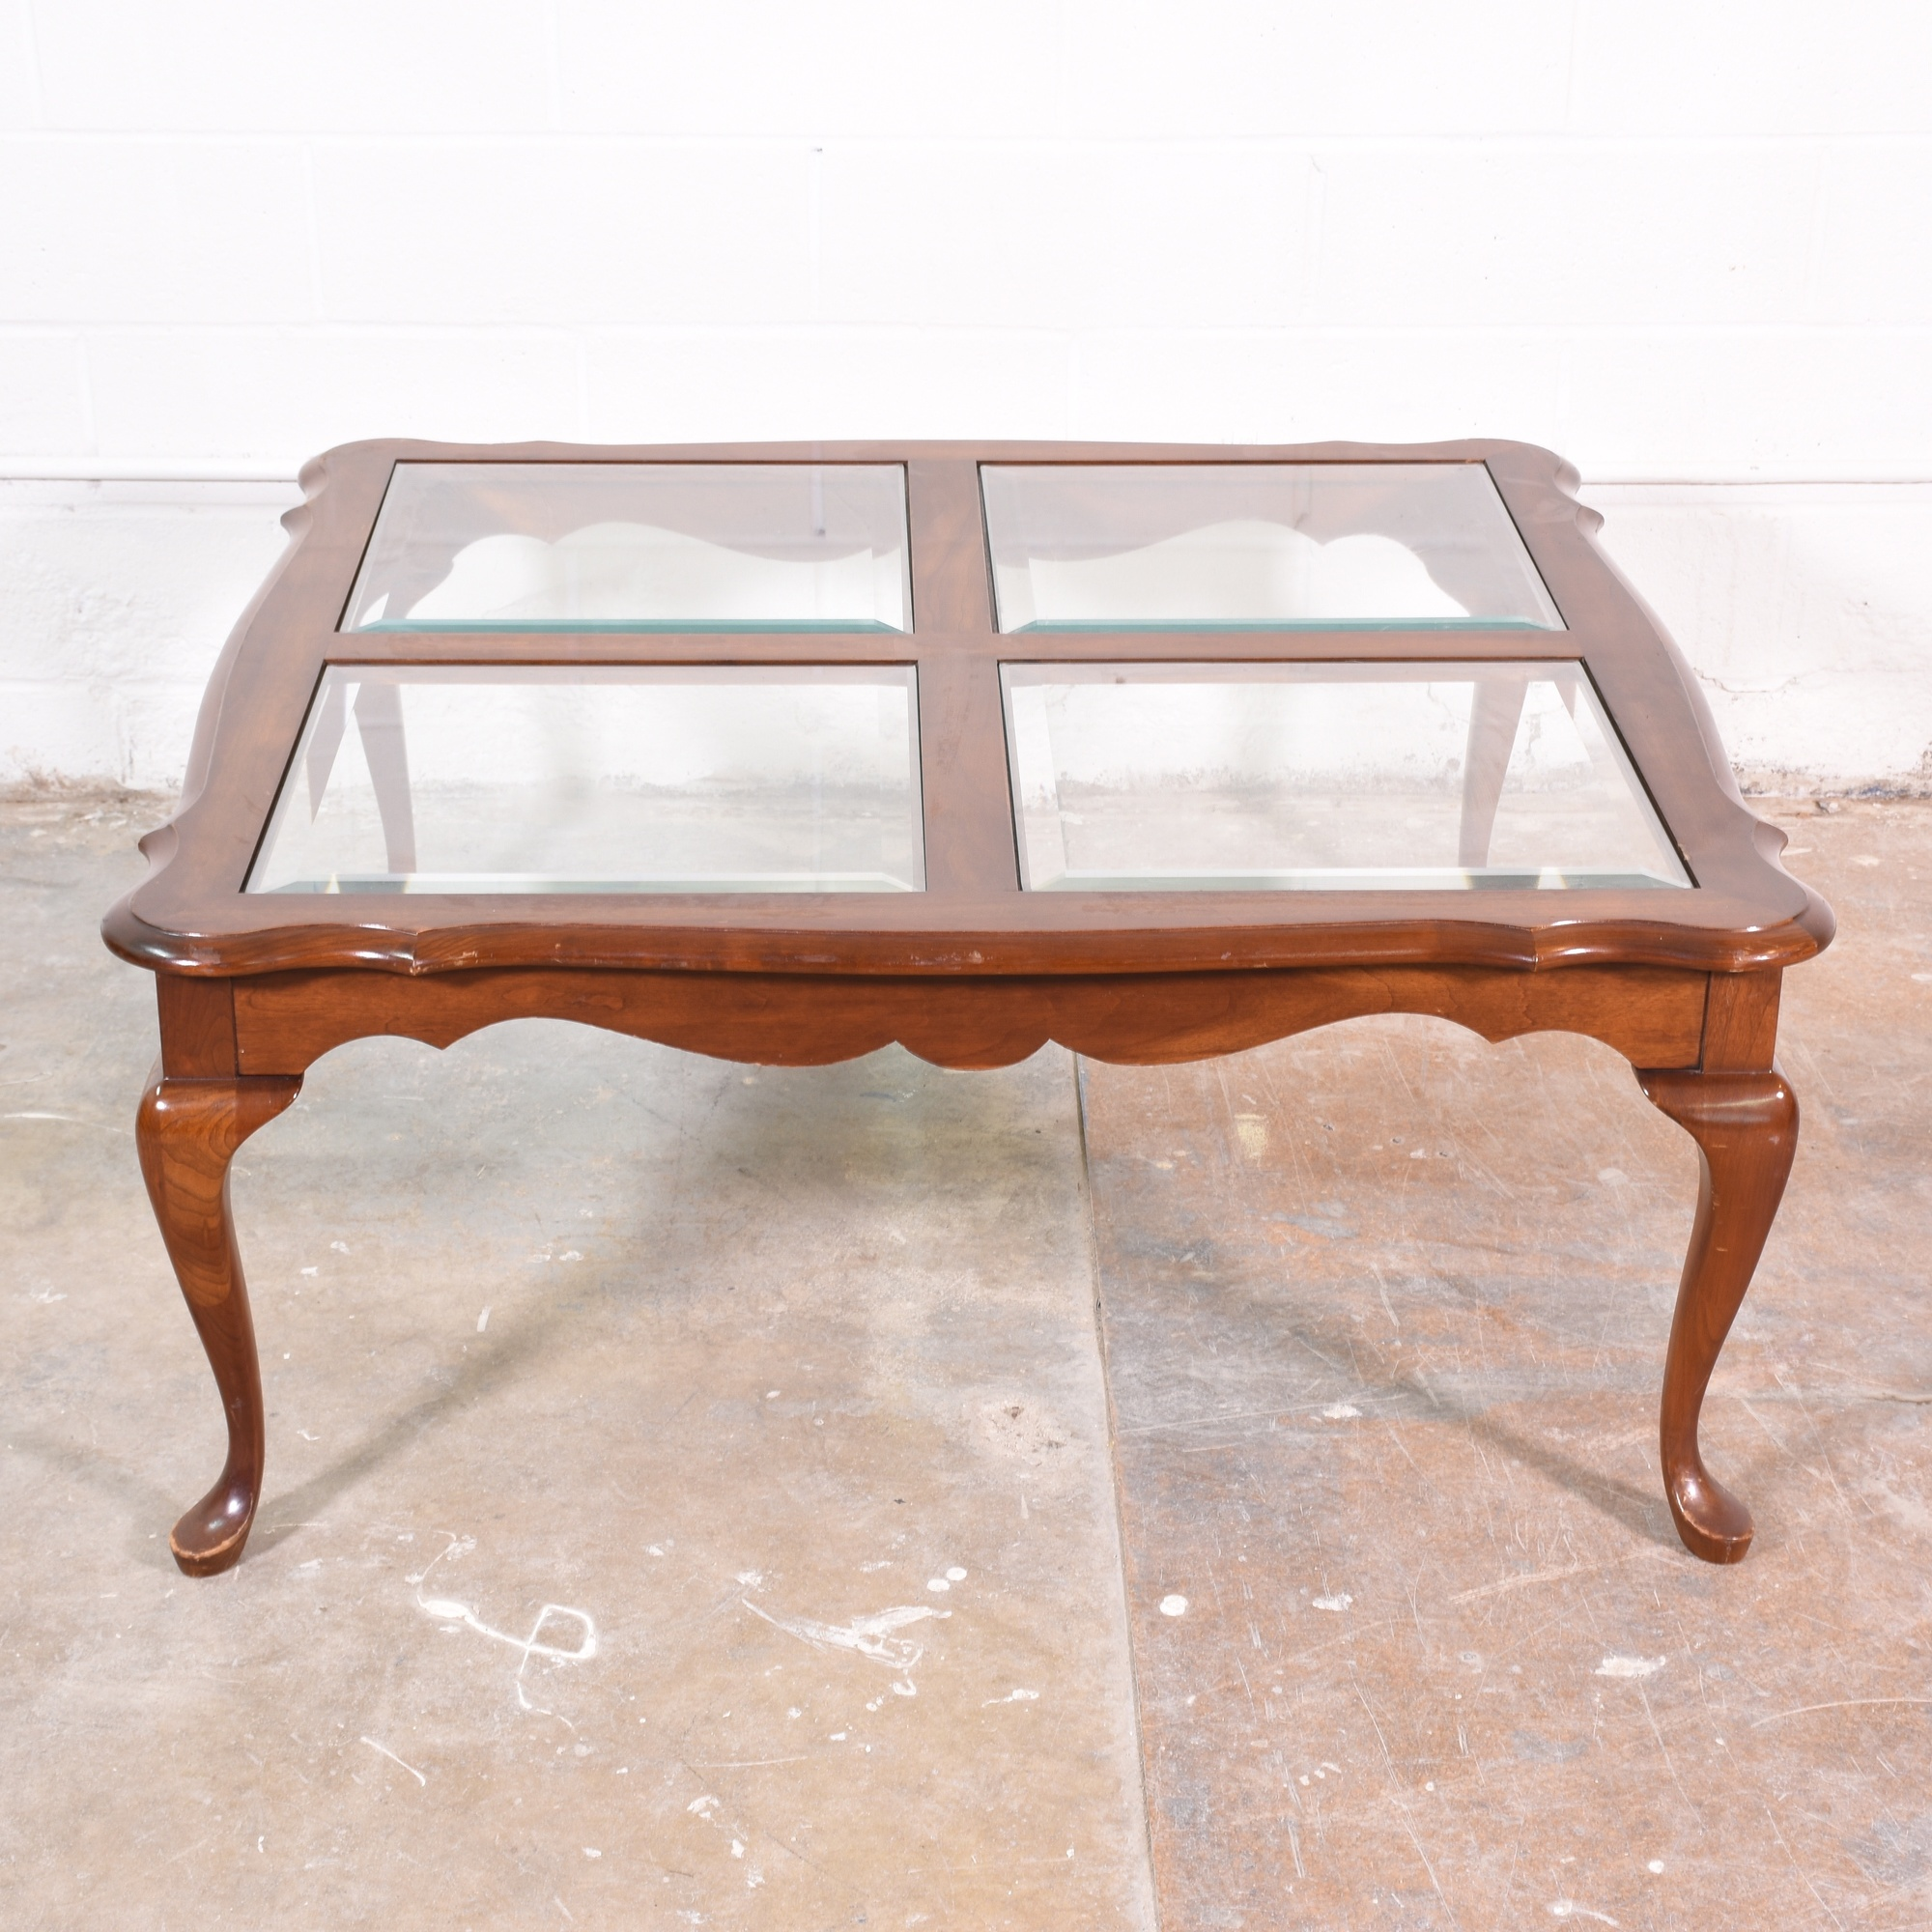 Victorian style coffee table w glass inlays loveseat vintage victorian style coffee table w glass inlays loveseat vintage furniture san diego geotapseo Gallery